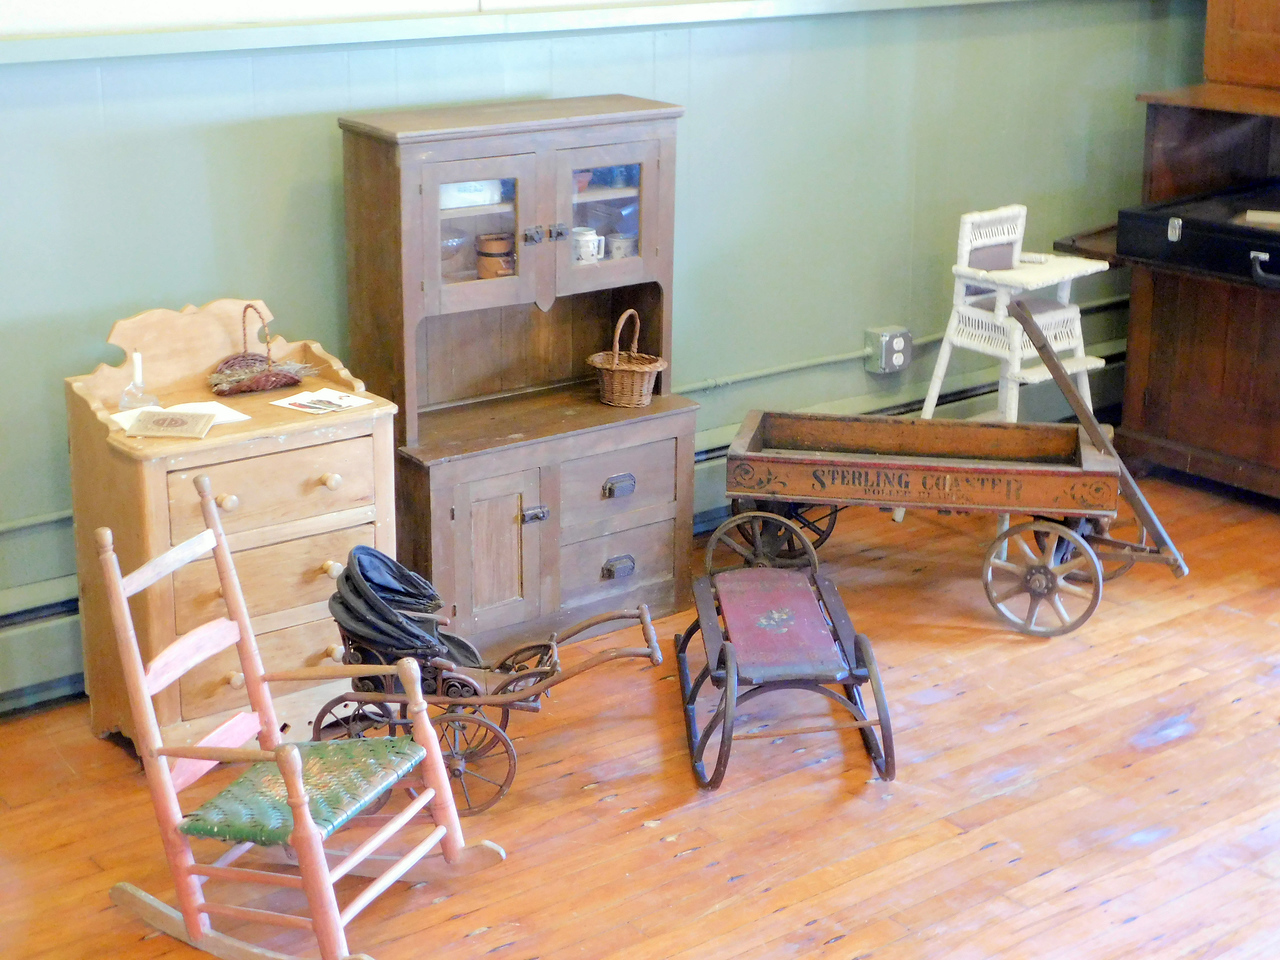 BOB FINNAN / GAZETTE Children's toys from 1800-1900 are on display at Weymouth School in Medina Township.